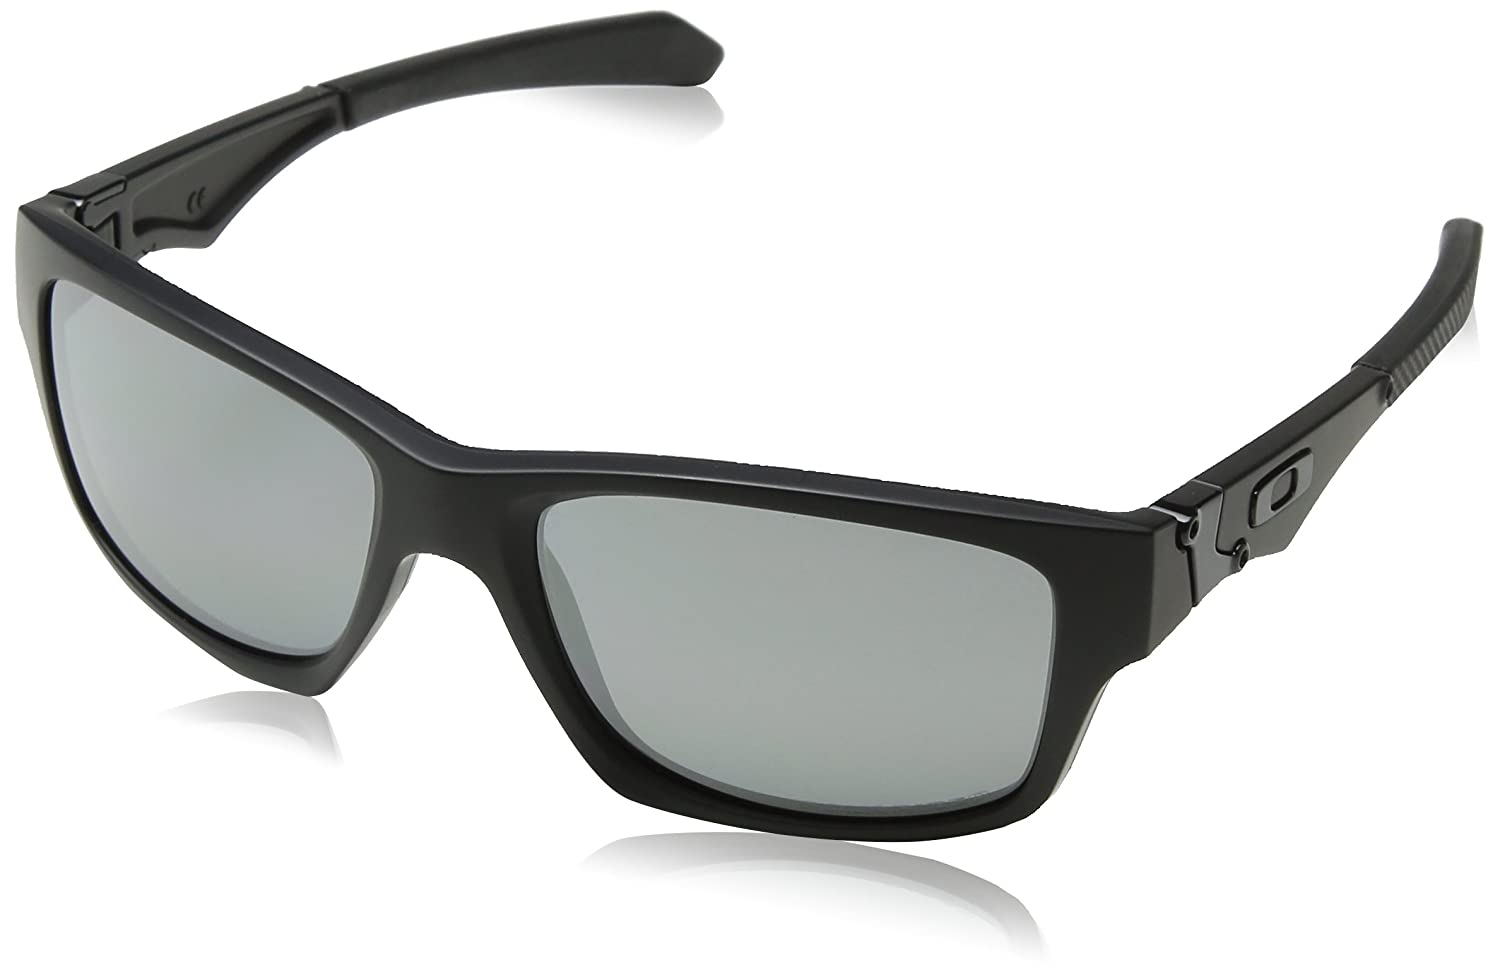 d15db1343fe Amazon.com  Oakley Jupiter Squared Men s Polarized Lifestyle Sports  Sunglasses Eyewear - Matte Black Black Iridium One Size Fits All  Oakley   Clothing